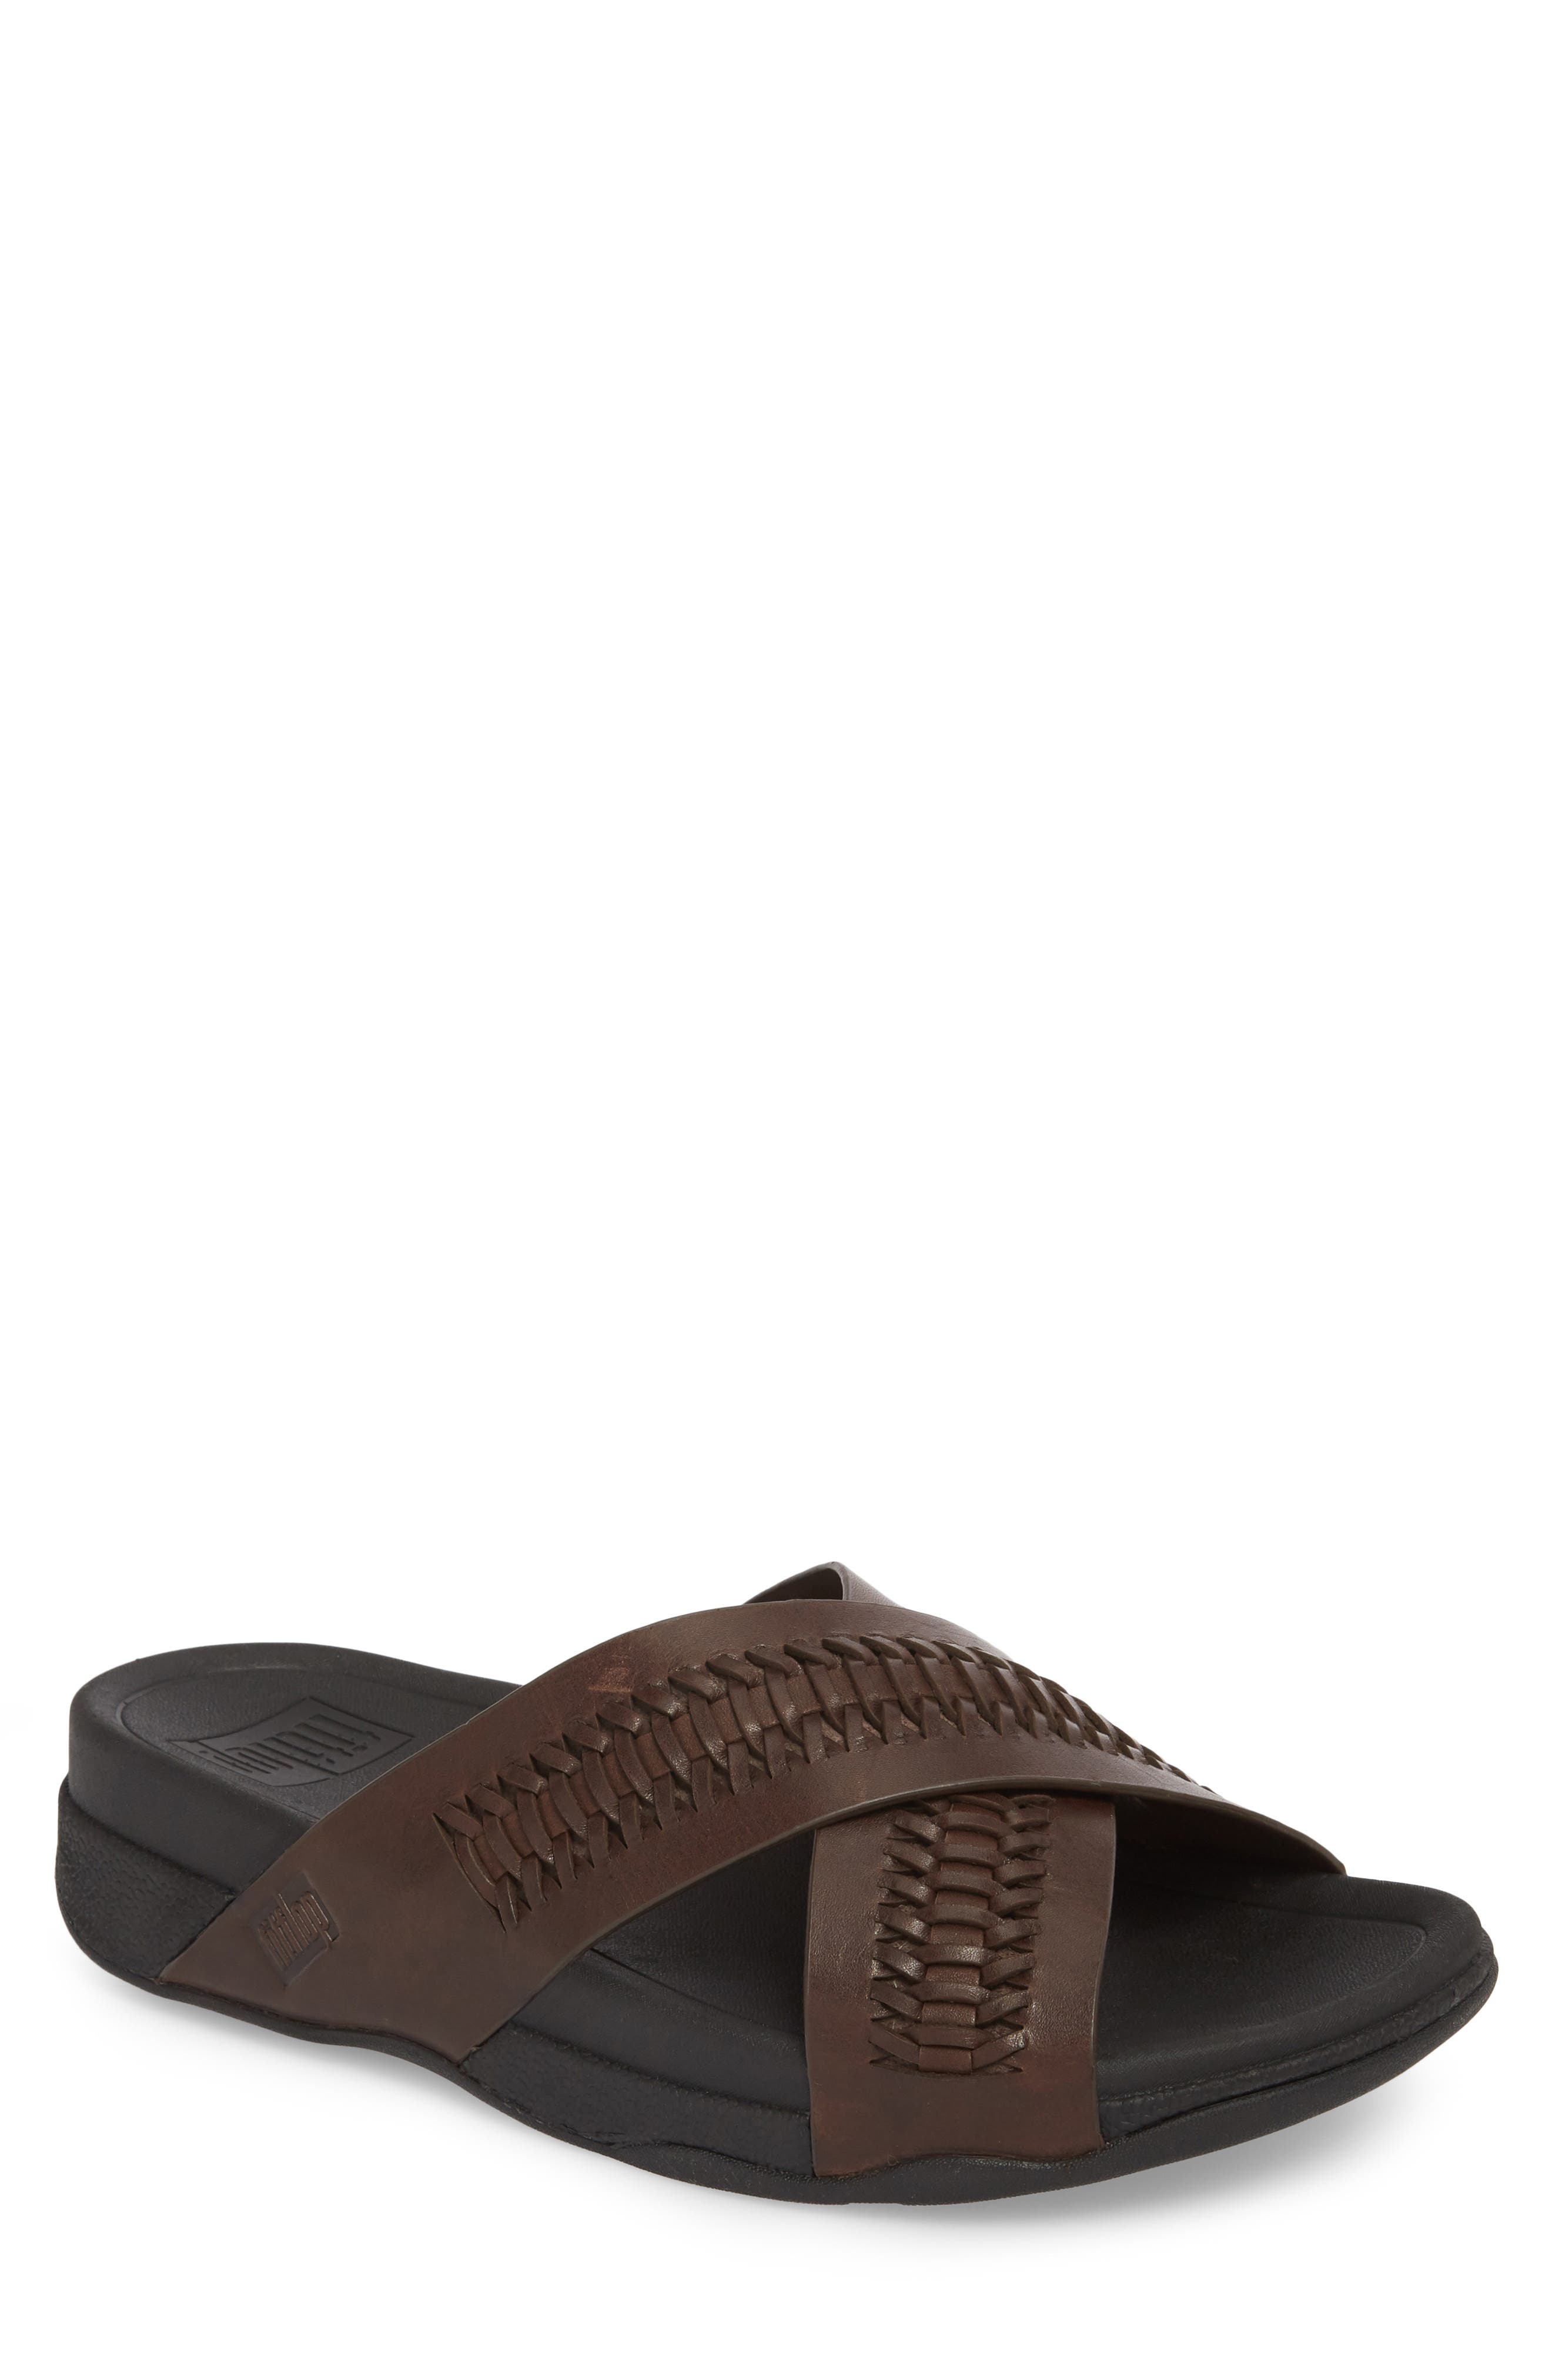 Surfer Slide Sandal,                             Main thumbnail 1, color,                             CHOCOLATE BROWN